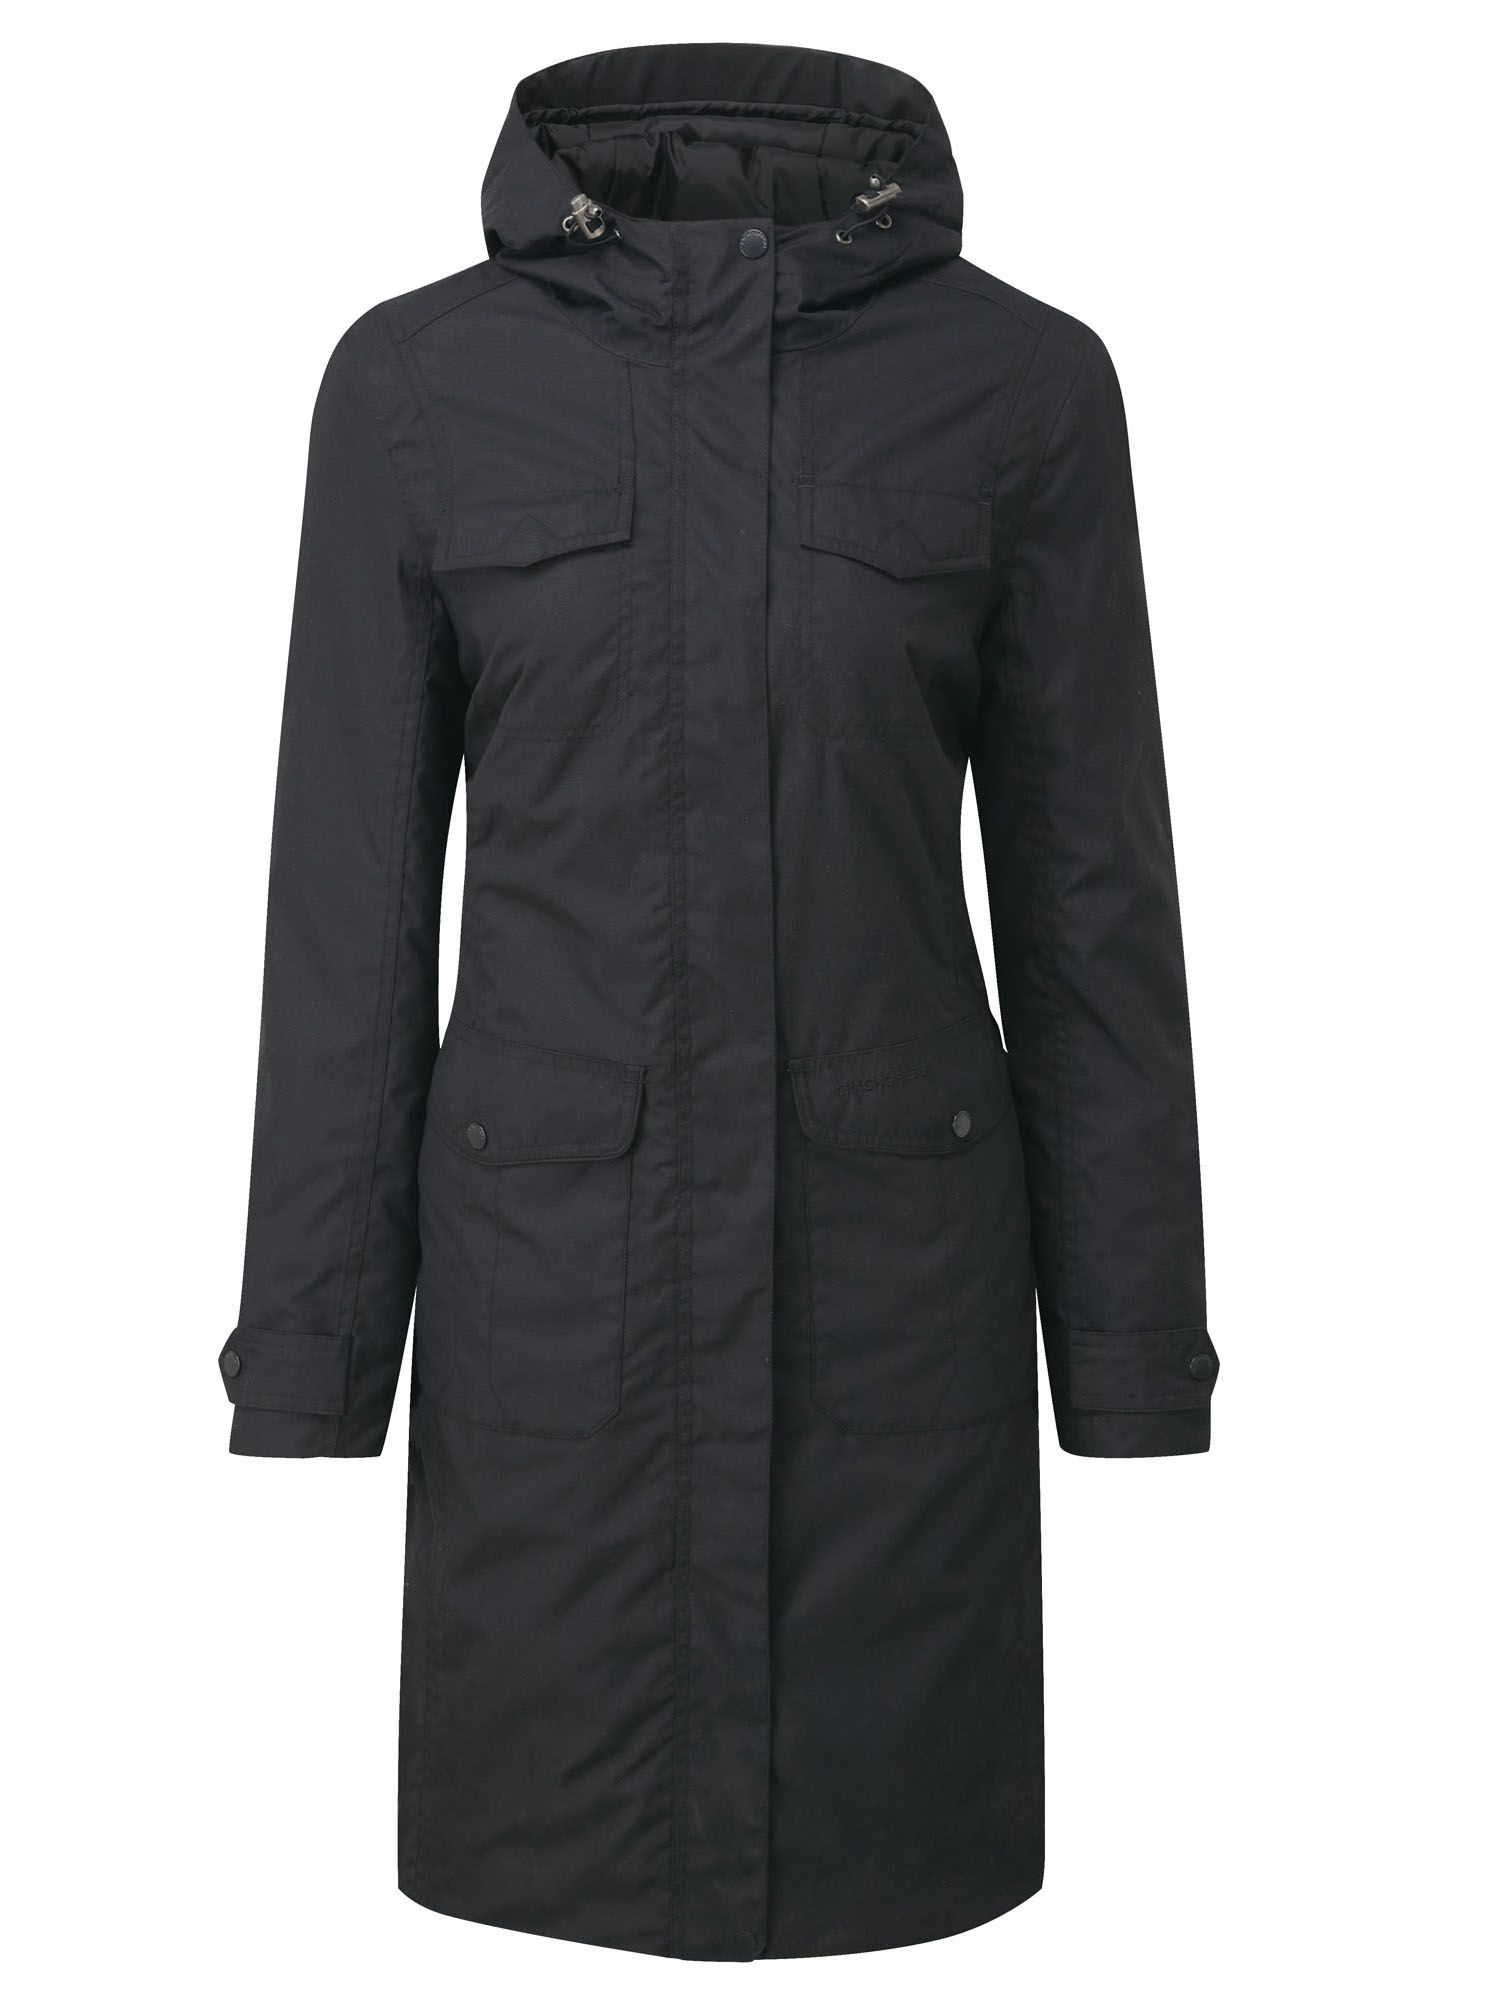 Craghoppers Emley Jacket, Jet Black